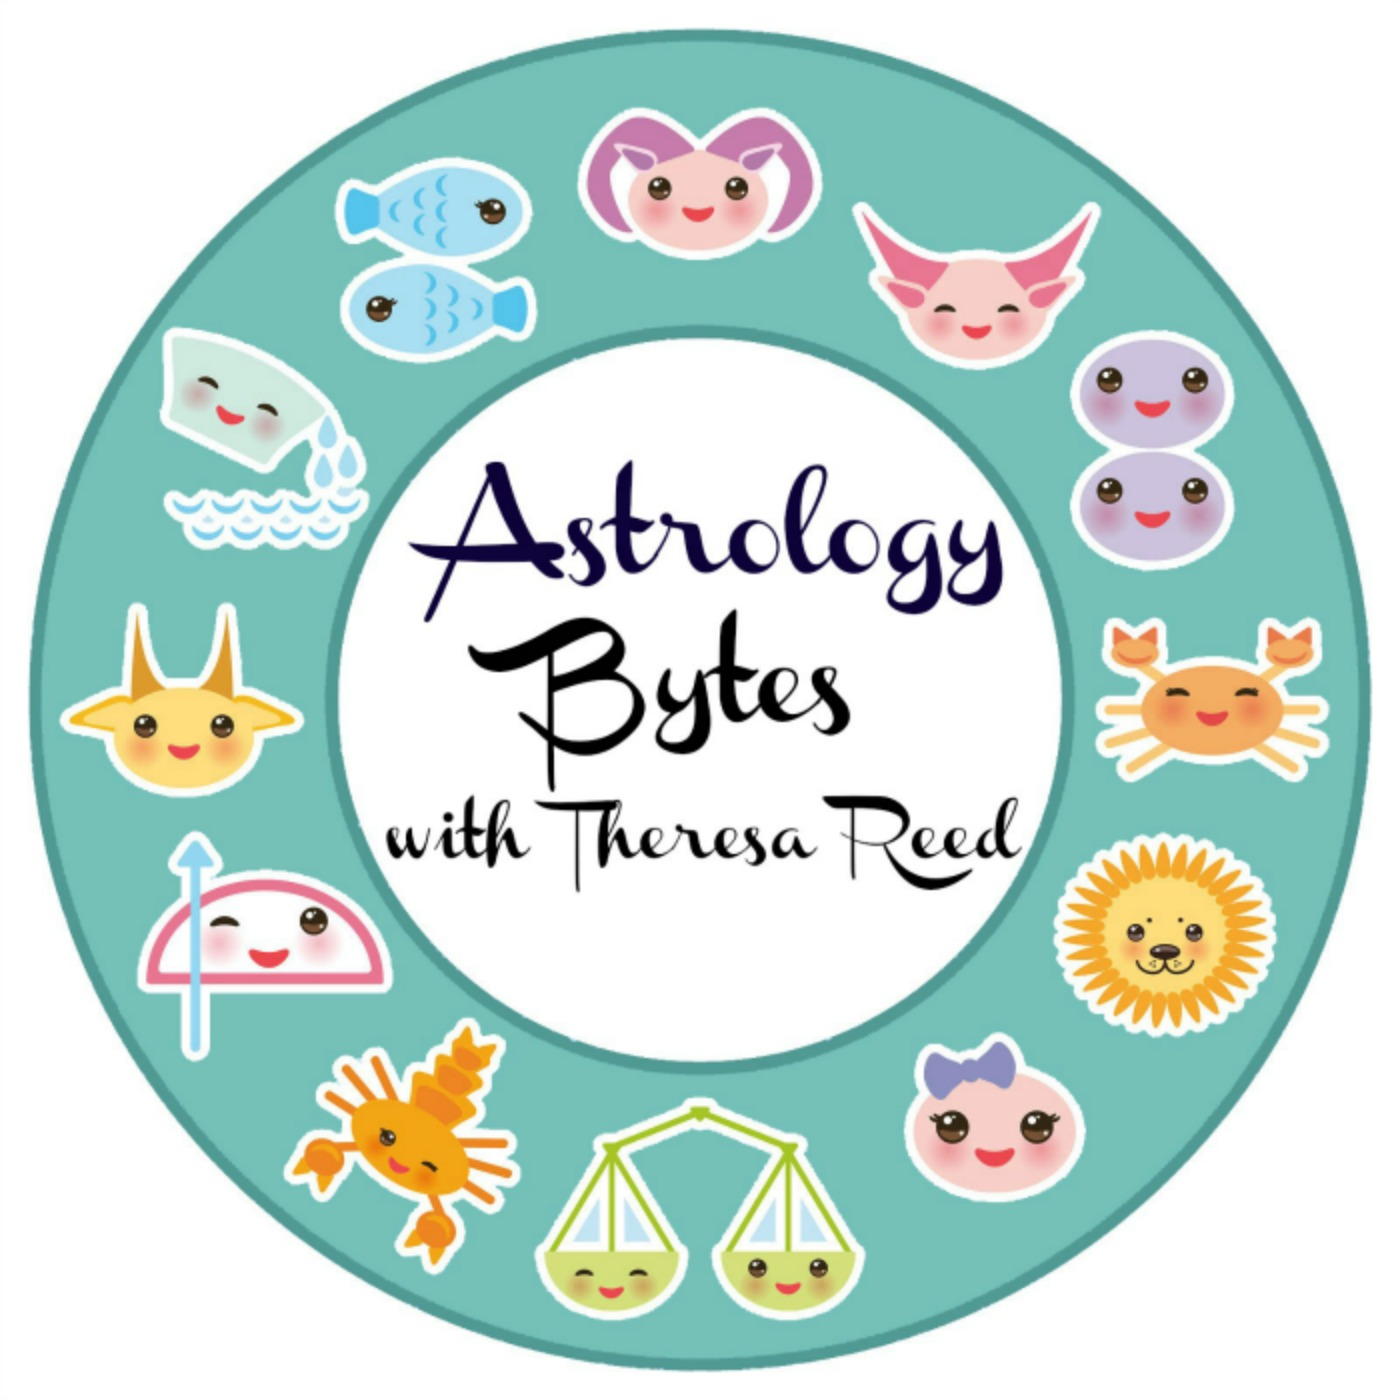 Astrology Bytes with Theresa Reed